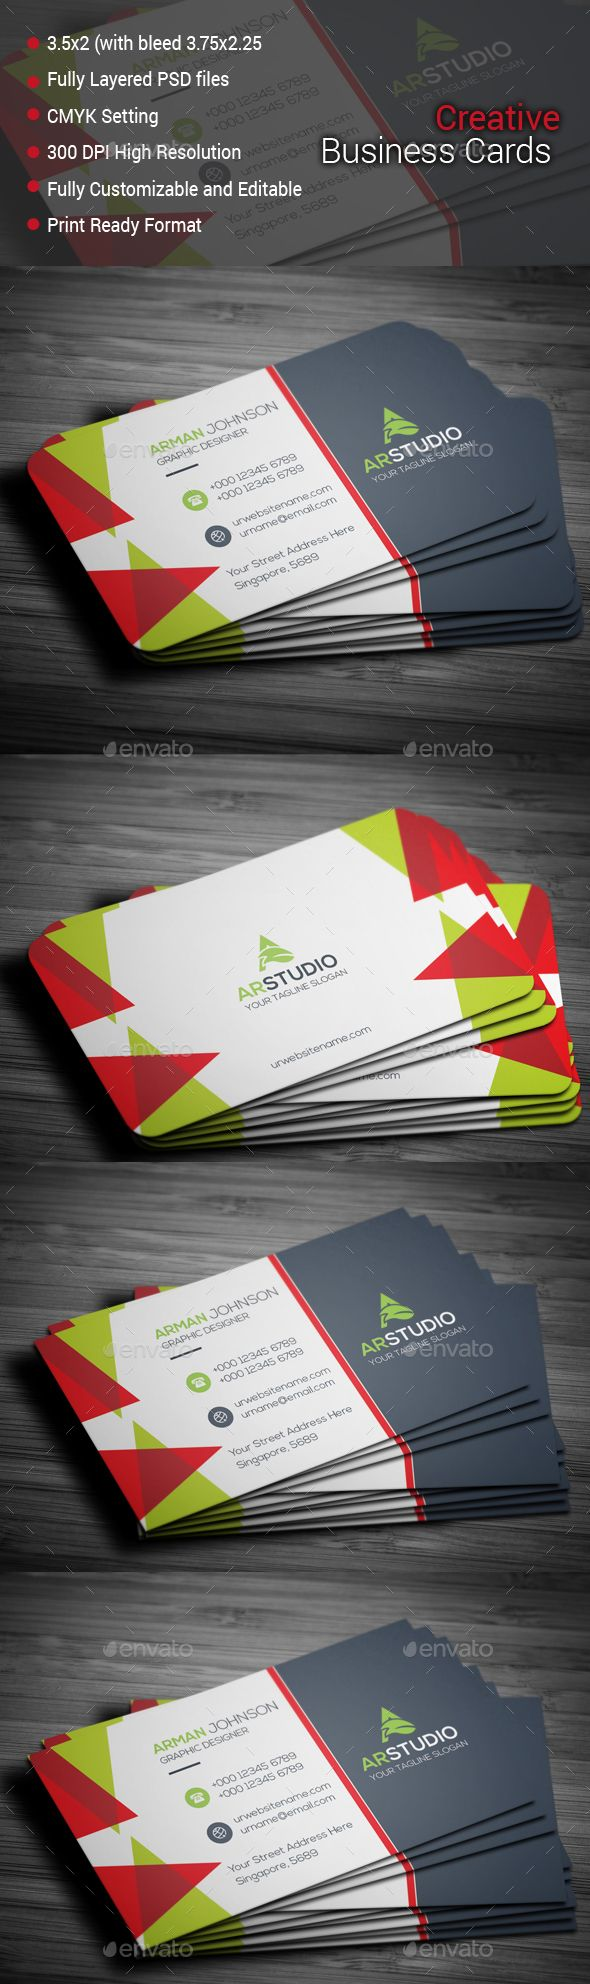 3023 best nice business cards on pinterest images on pinterest creative business card colourmoves